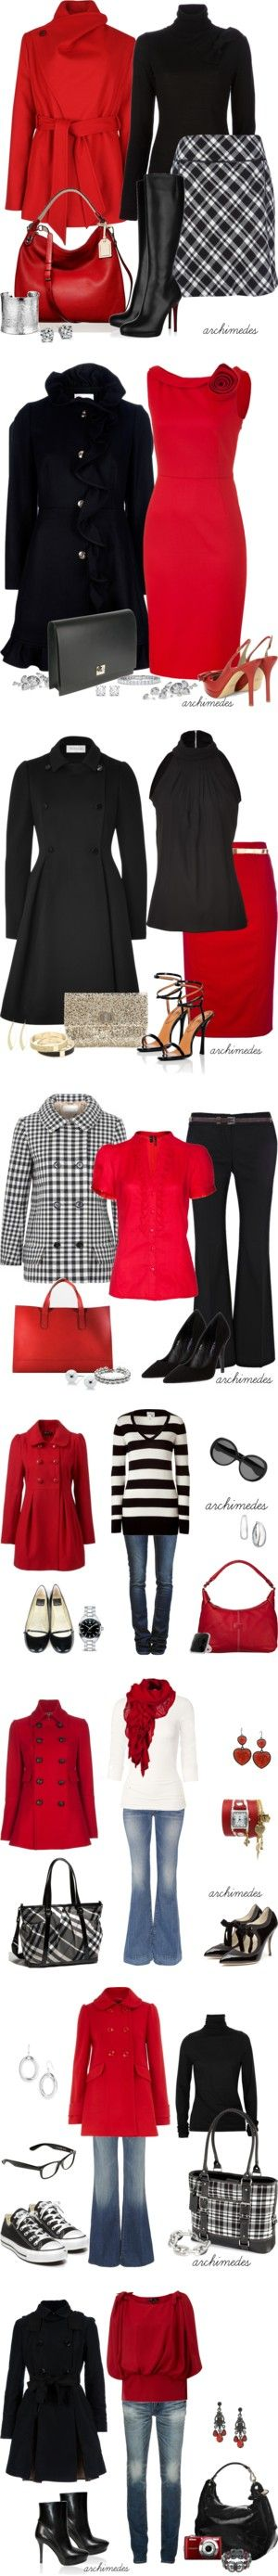 """Red and White and Black"" cute! love the black and white striped sweater outfit."